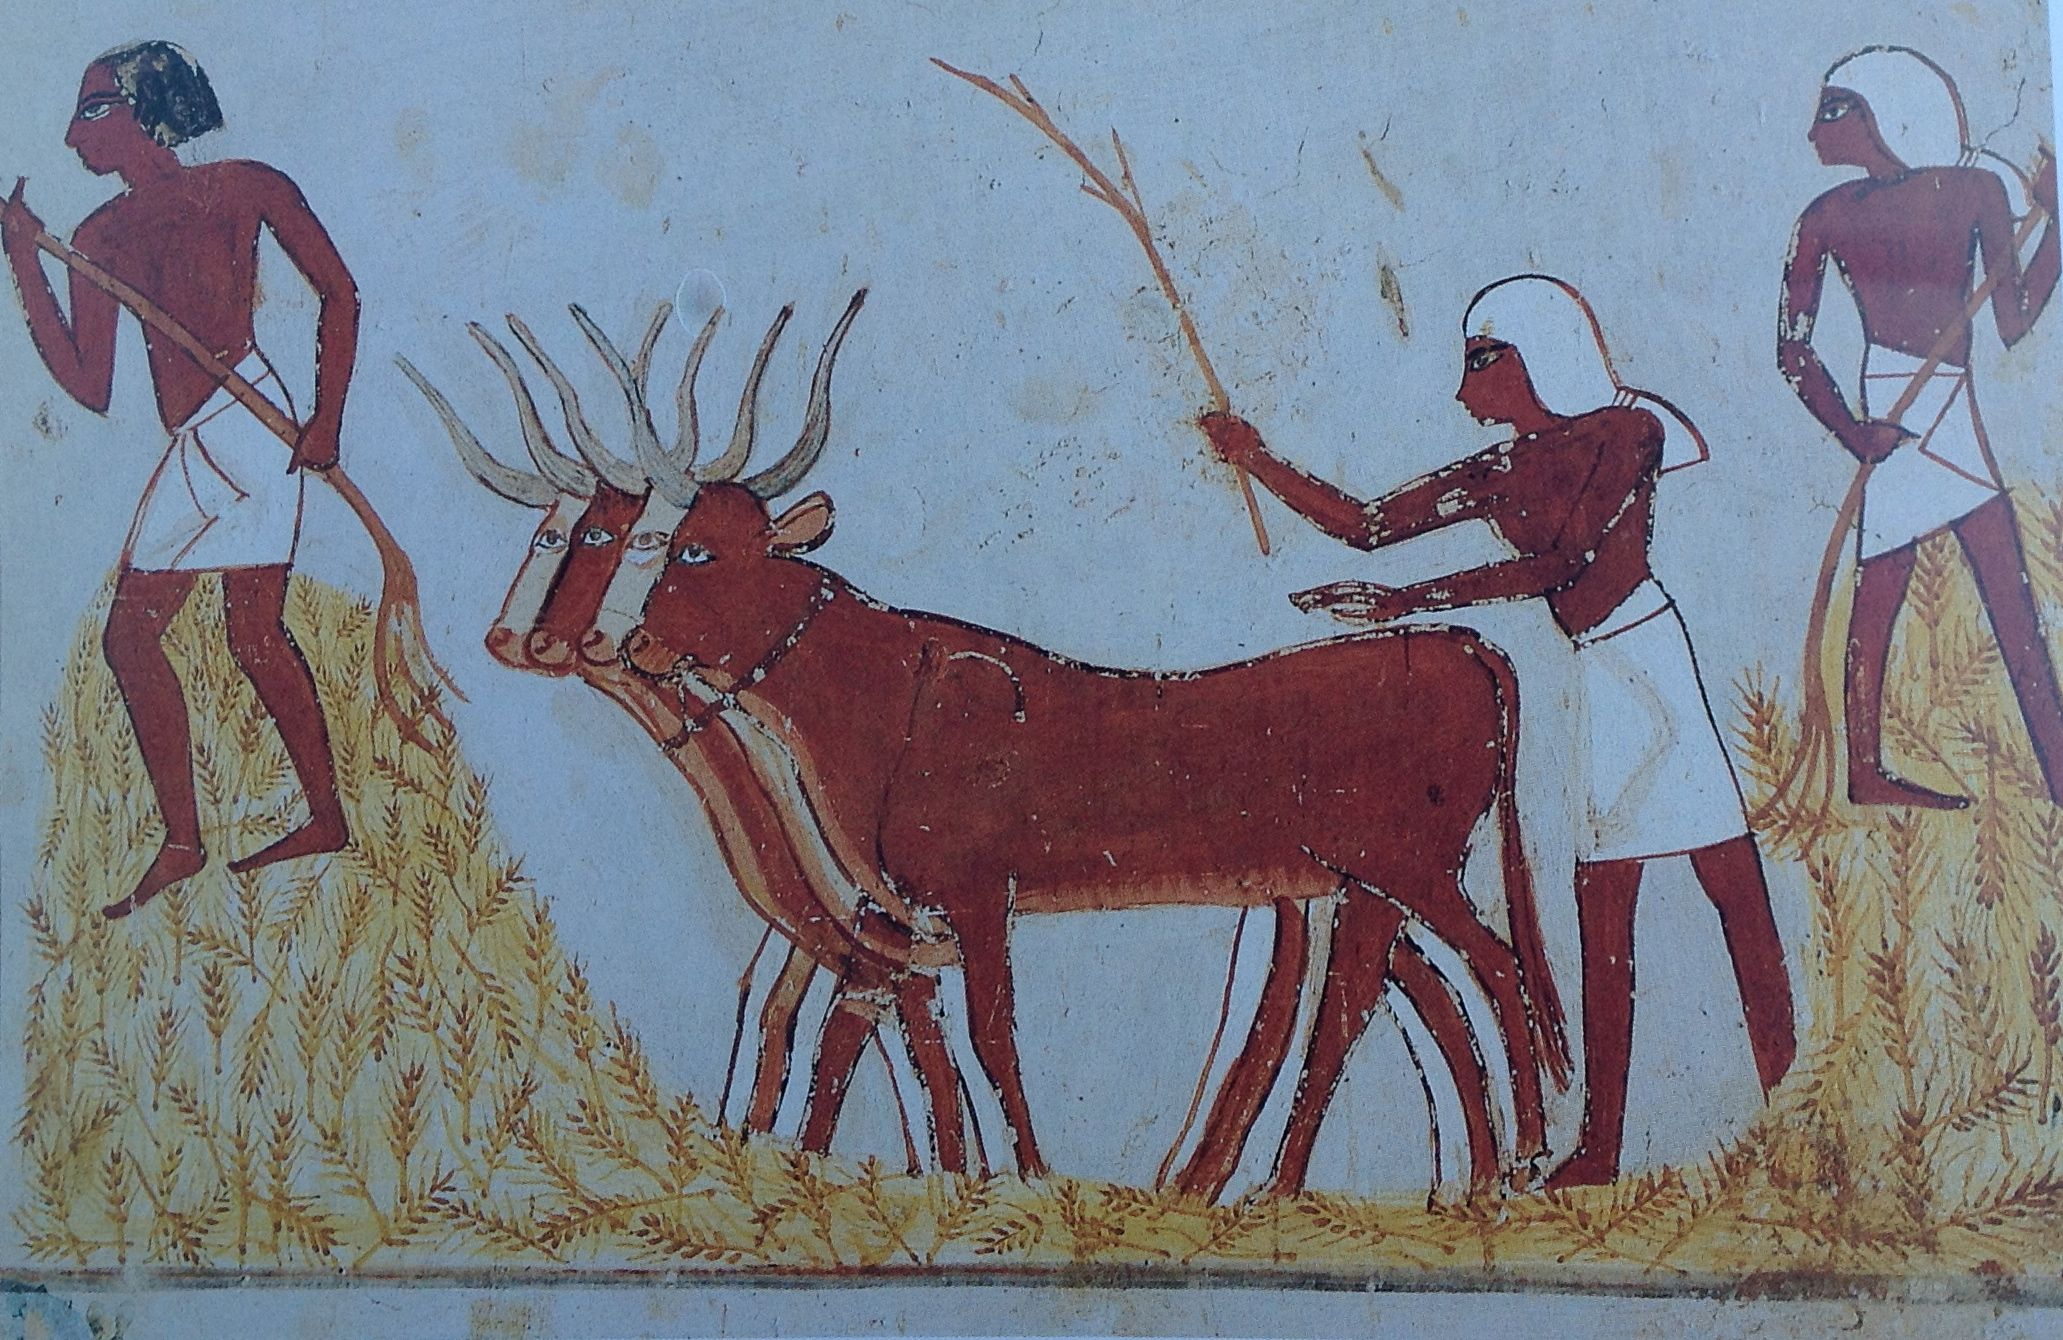 ian kingship and animal husbandry threshing corn 18th dyn gurna tomb of menna image courtesy of